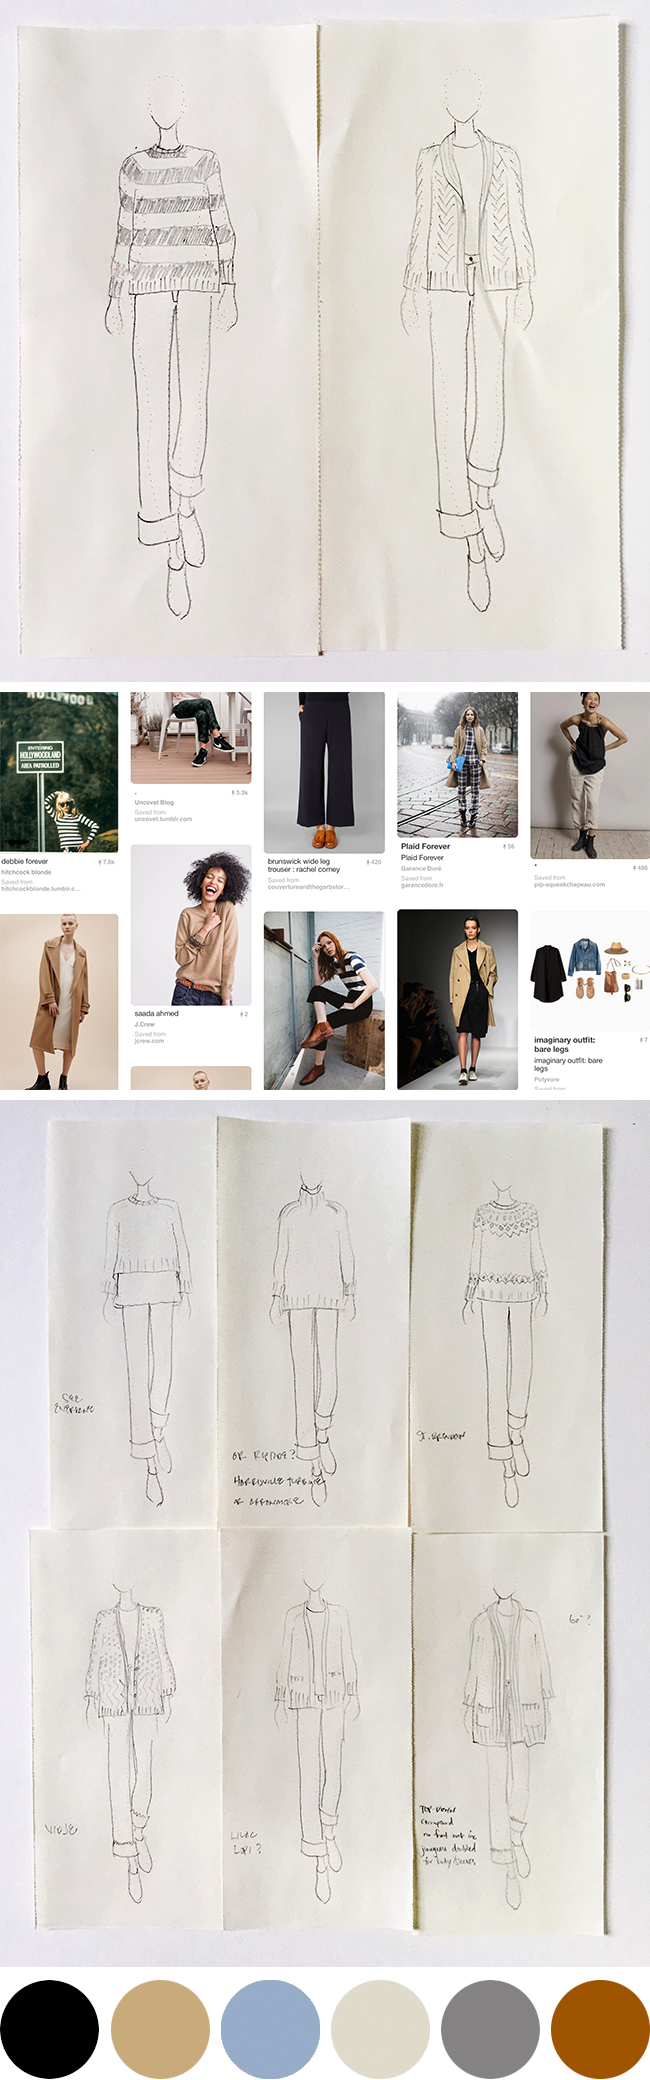 Winter '16 wardrobe planning, Part 1: Wants and needs